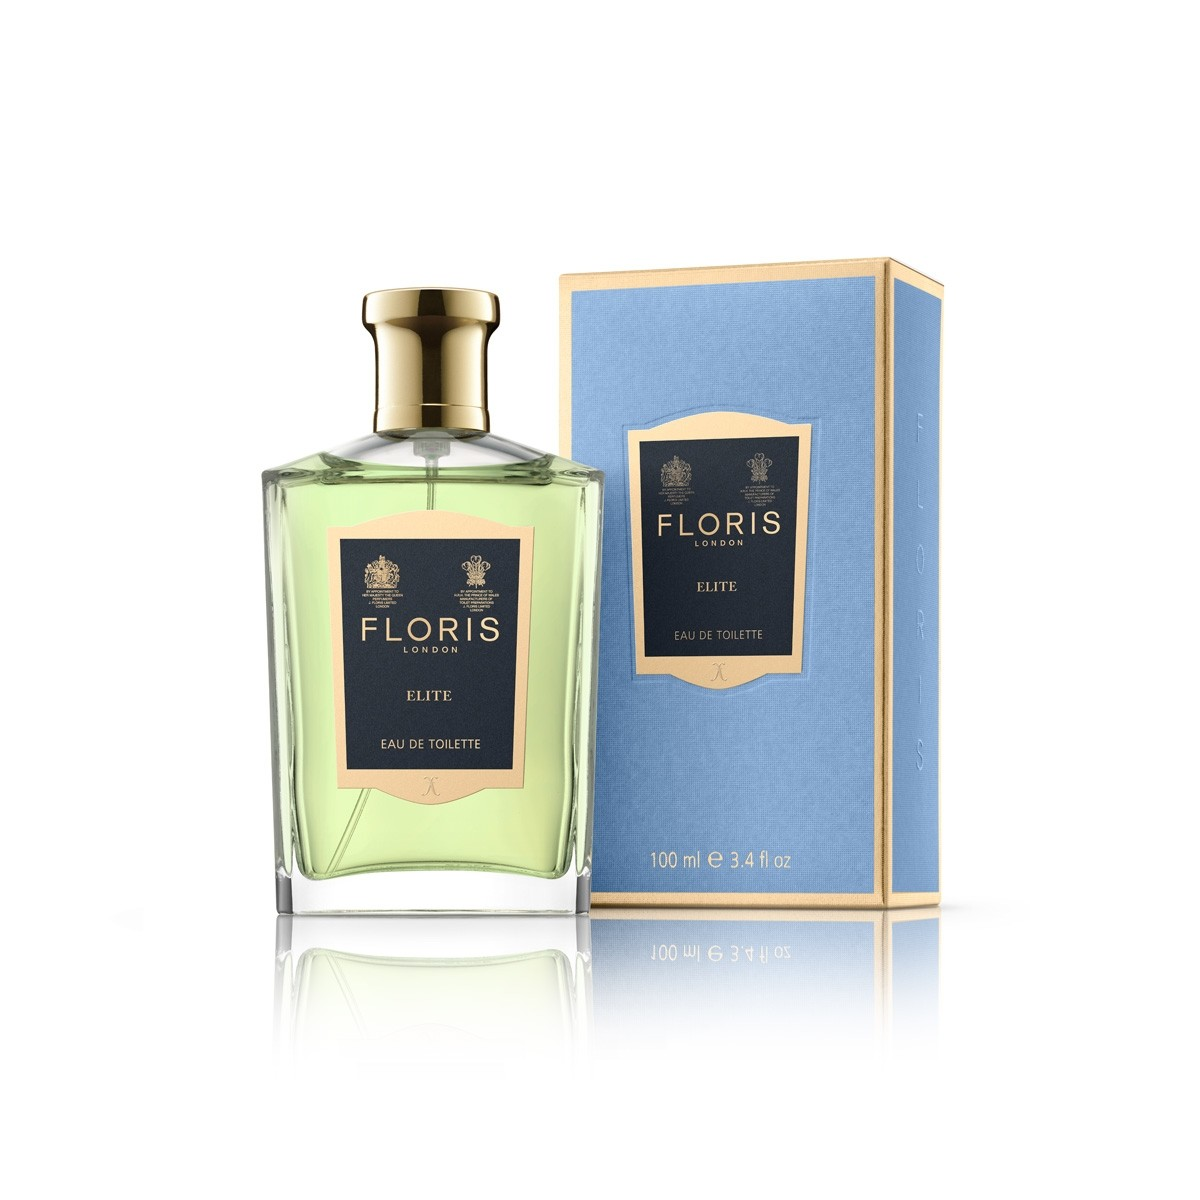 Floris Elite Eau de Toilette 100 ml